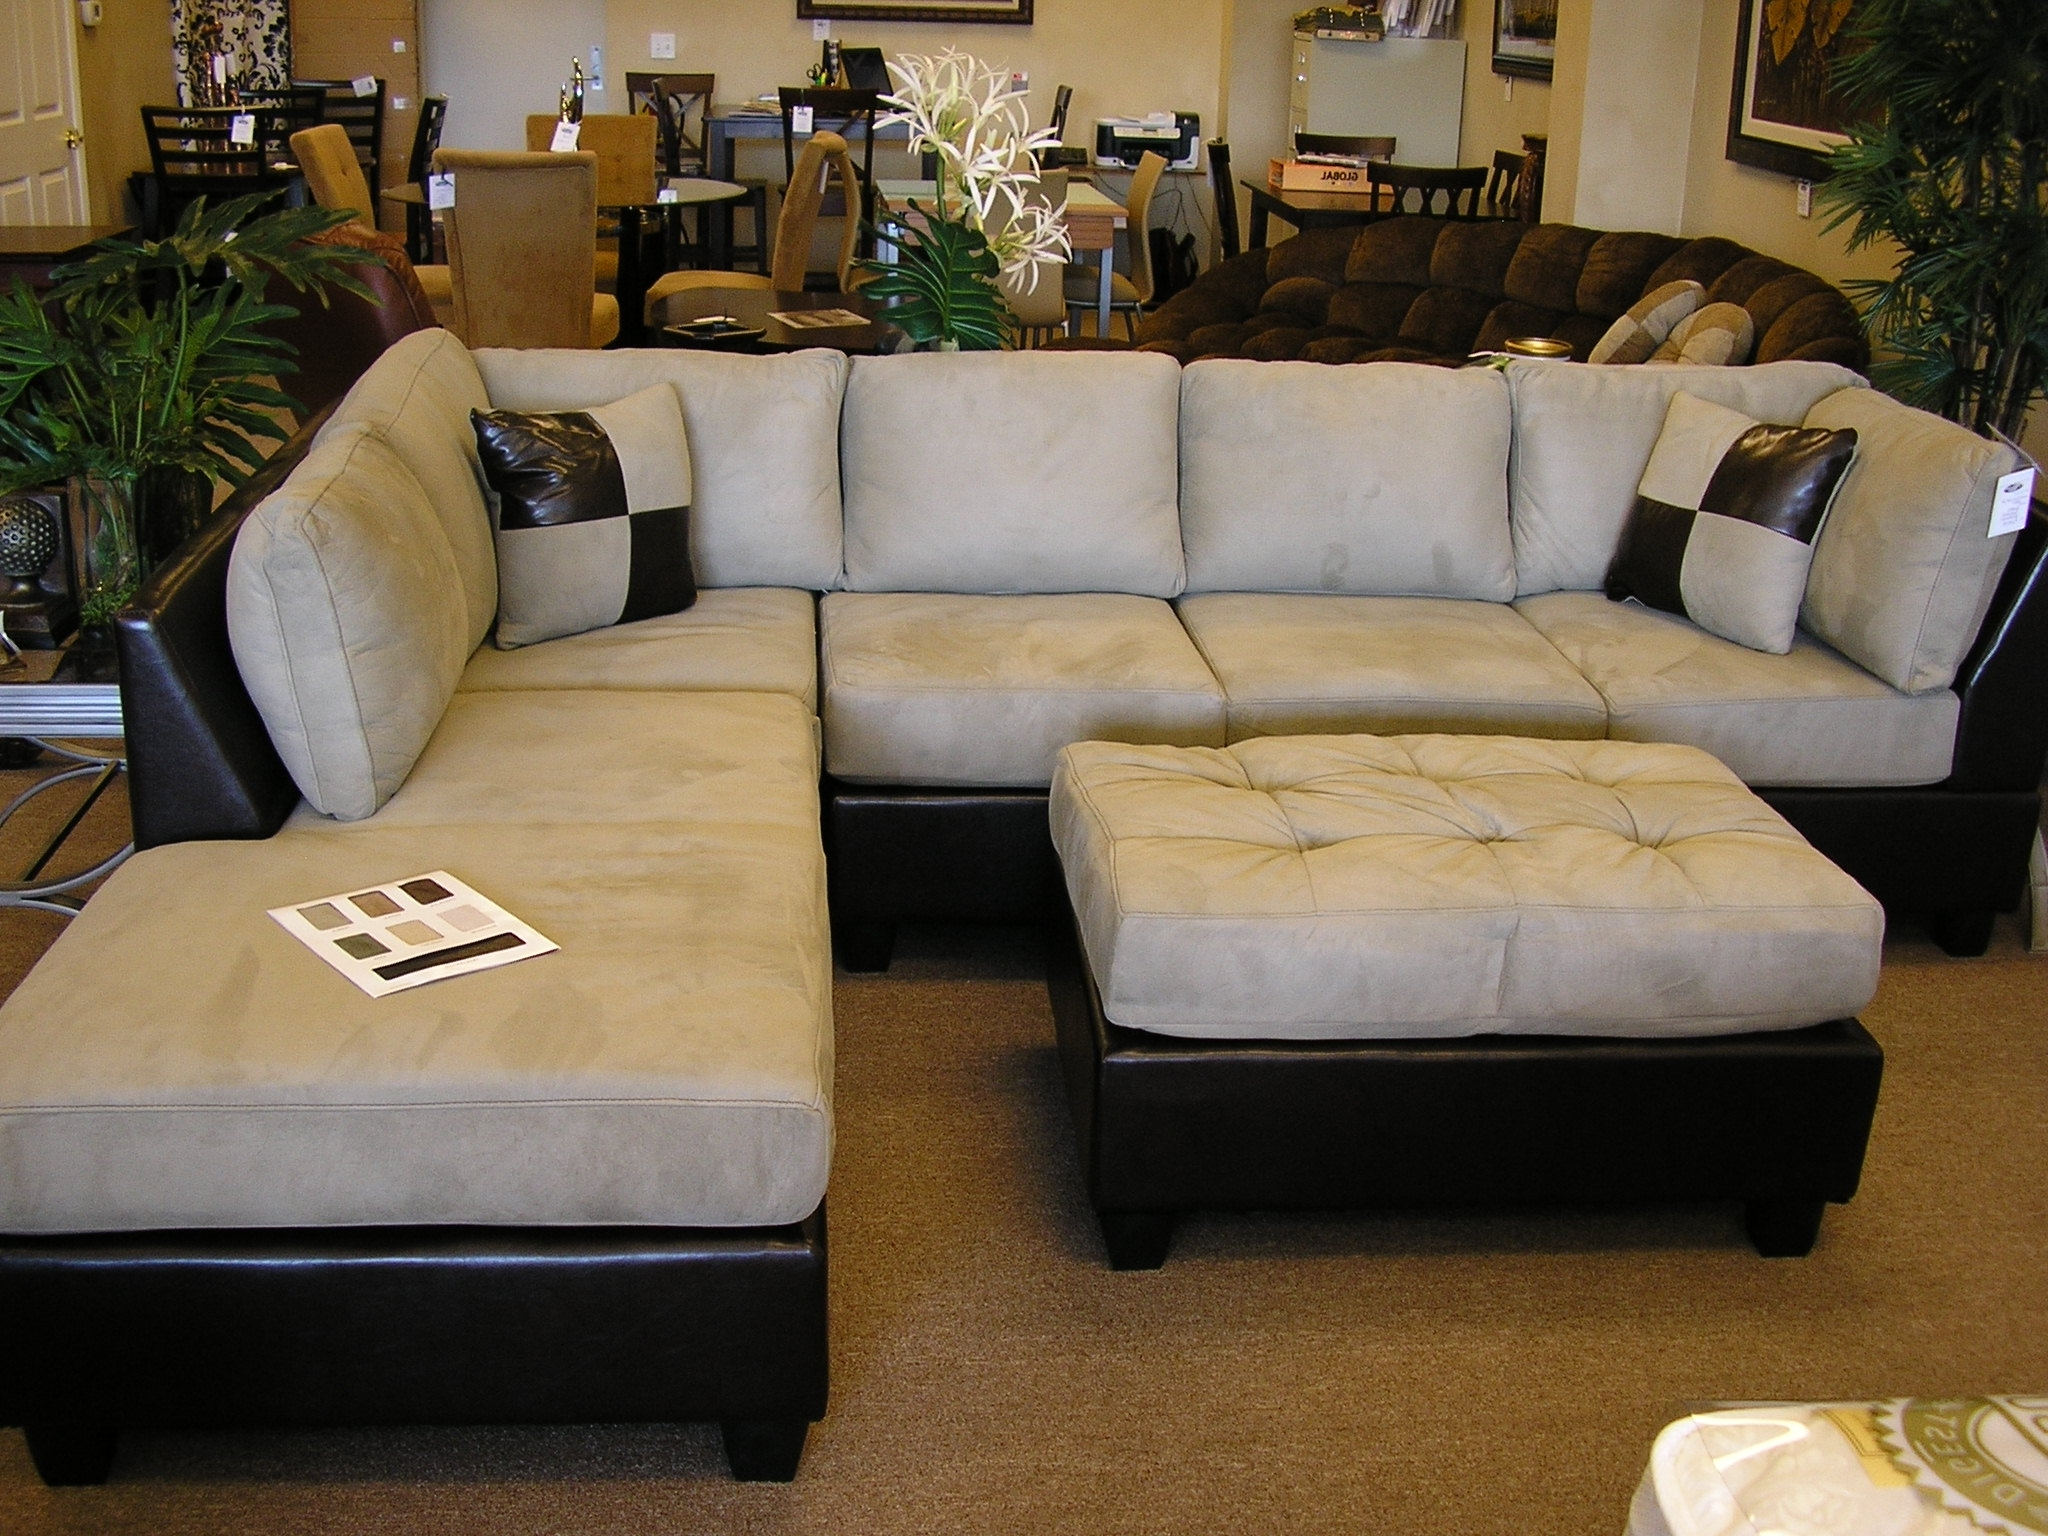 Recent Small Sectional Sofas With Chaise And Ottoman Pertaining To Furniture : Sectional Chaise Lounge Sofa Double Along With (View 7 of 15)